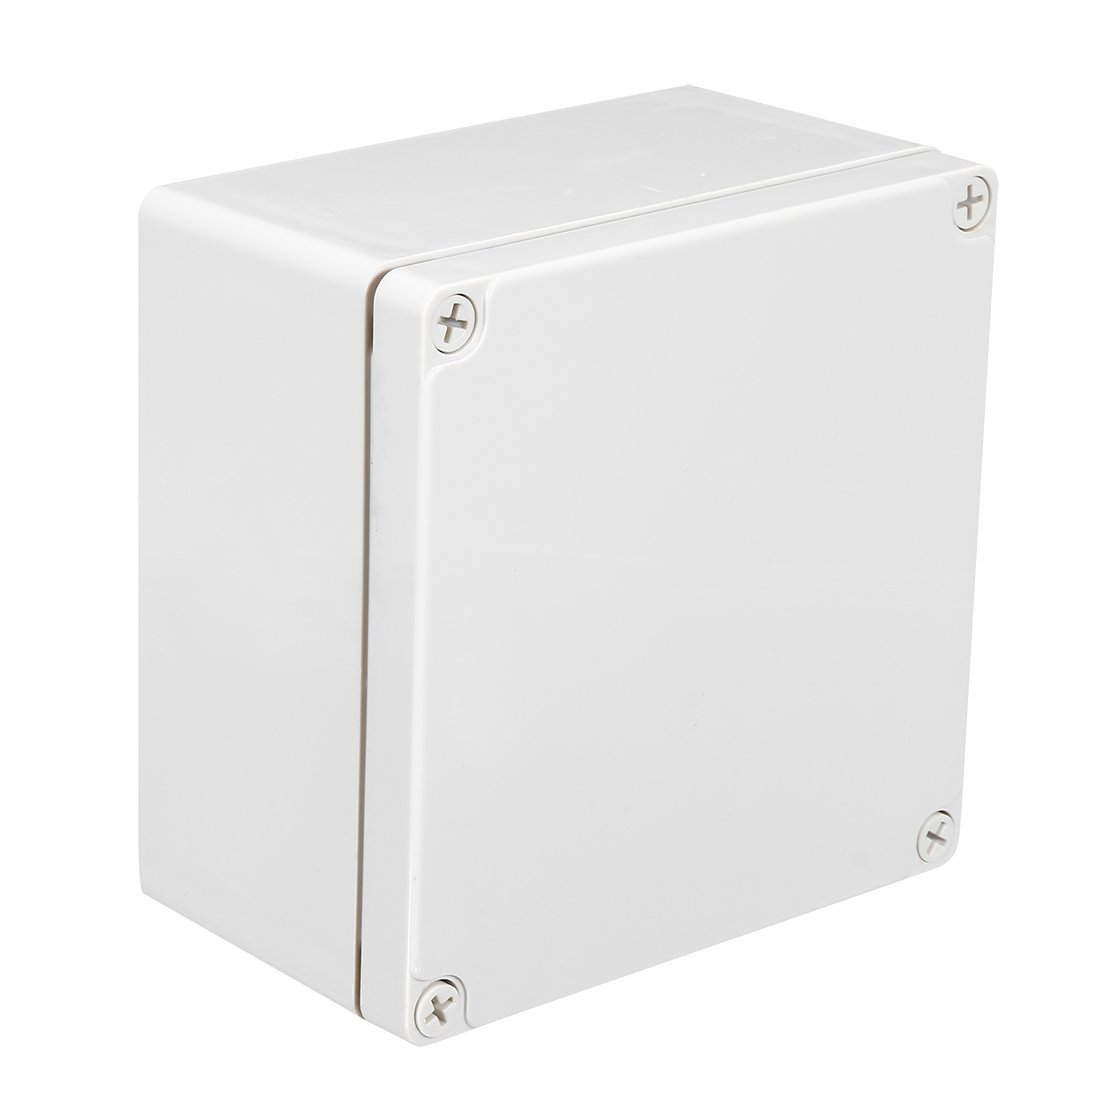 uxcell 160x160x90mm/6.3x6.3x3.54inch Wateproof IP67 Electronic ABS Plastic DIY Junction Project Box Enclosure Case Outdoor/Indoor a18031600ux0134